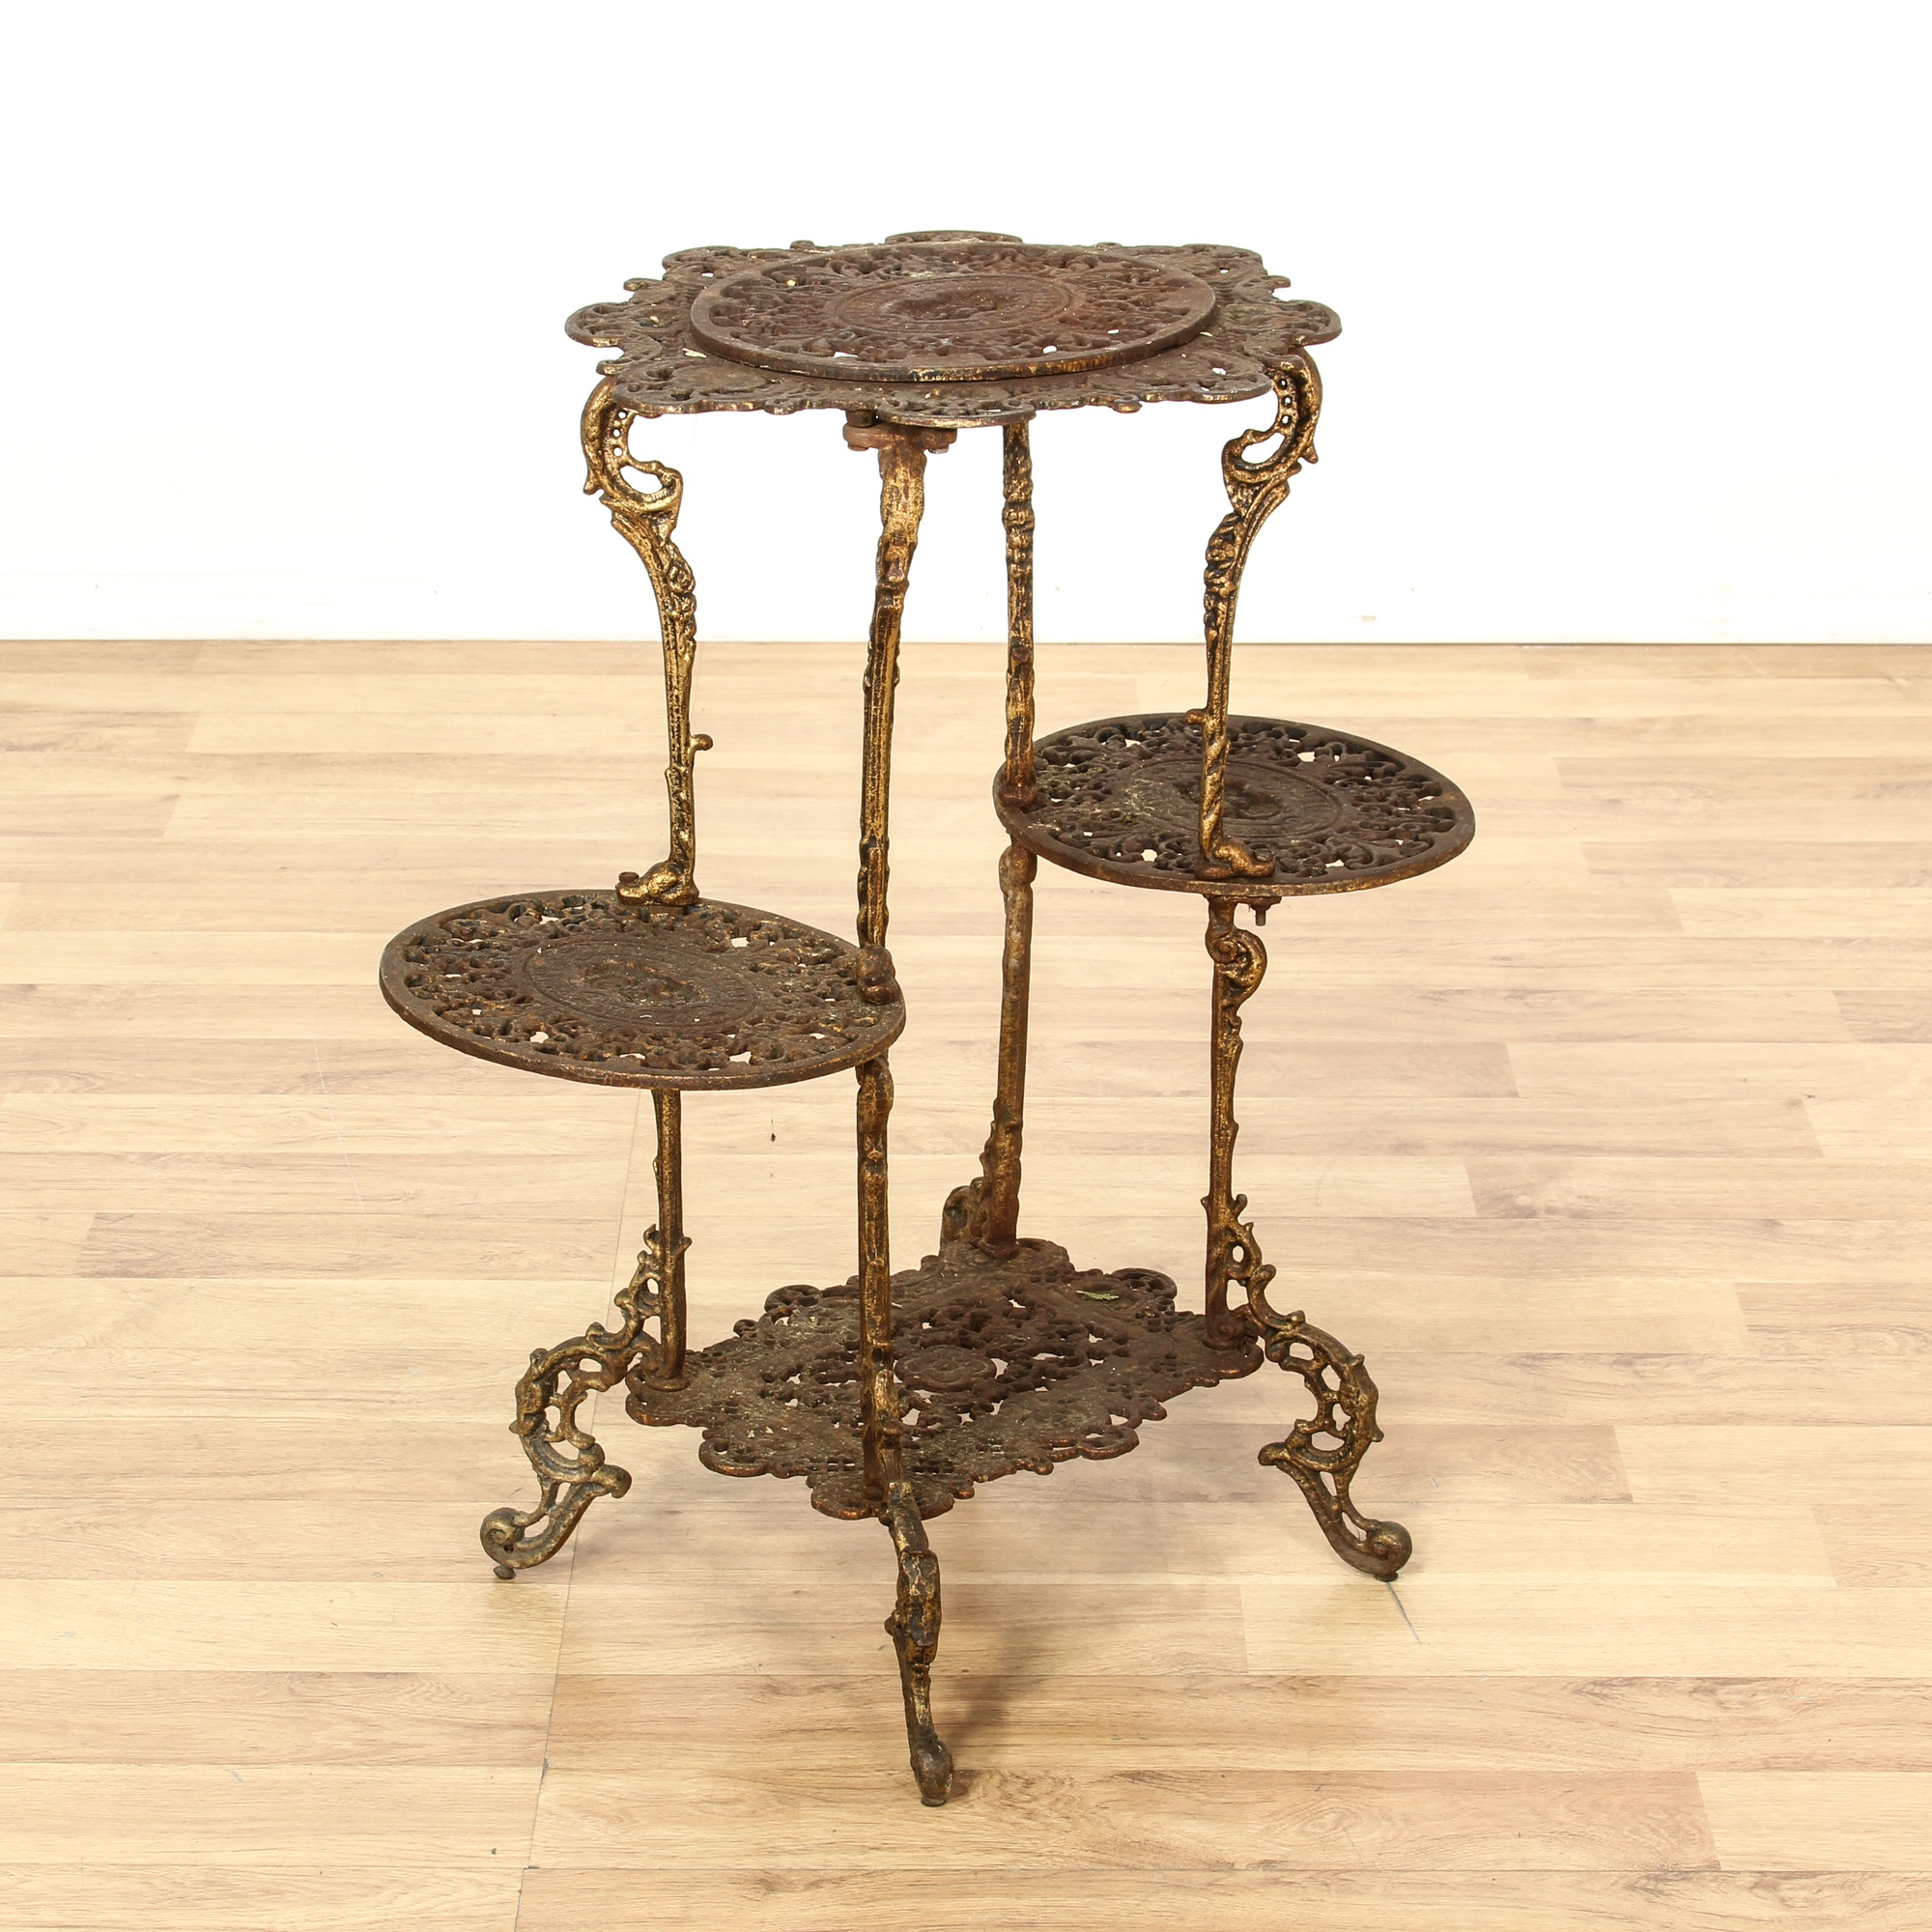 Carved metal patina tiered plant stand loveseat vintage furniture san diego los angeles - Tiered metal plant stand ...